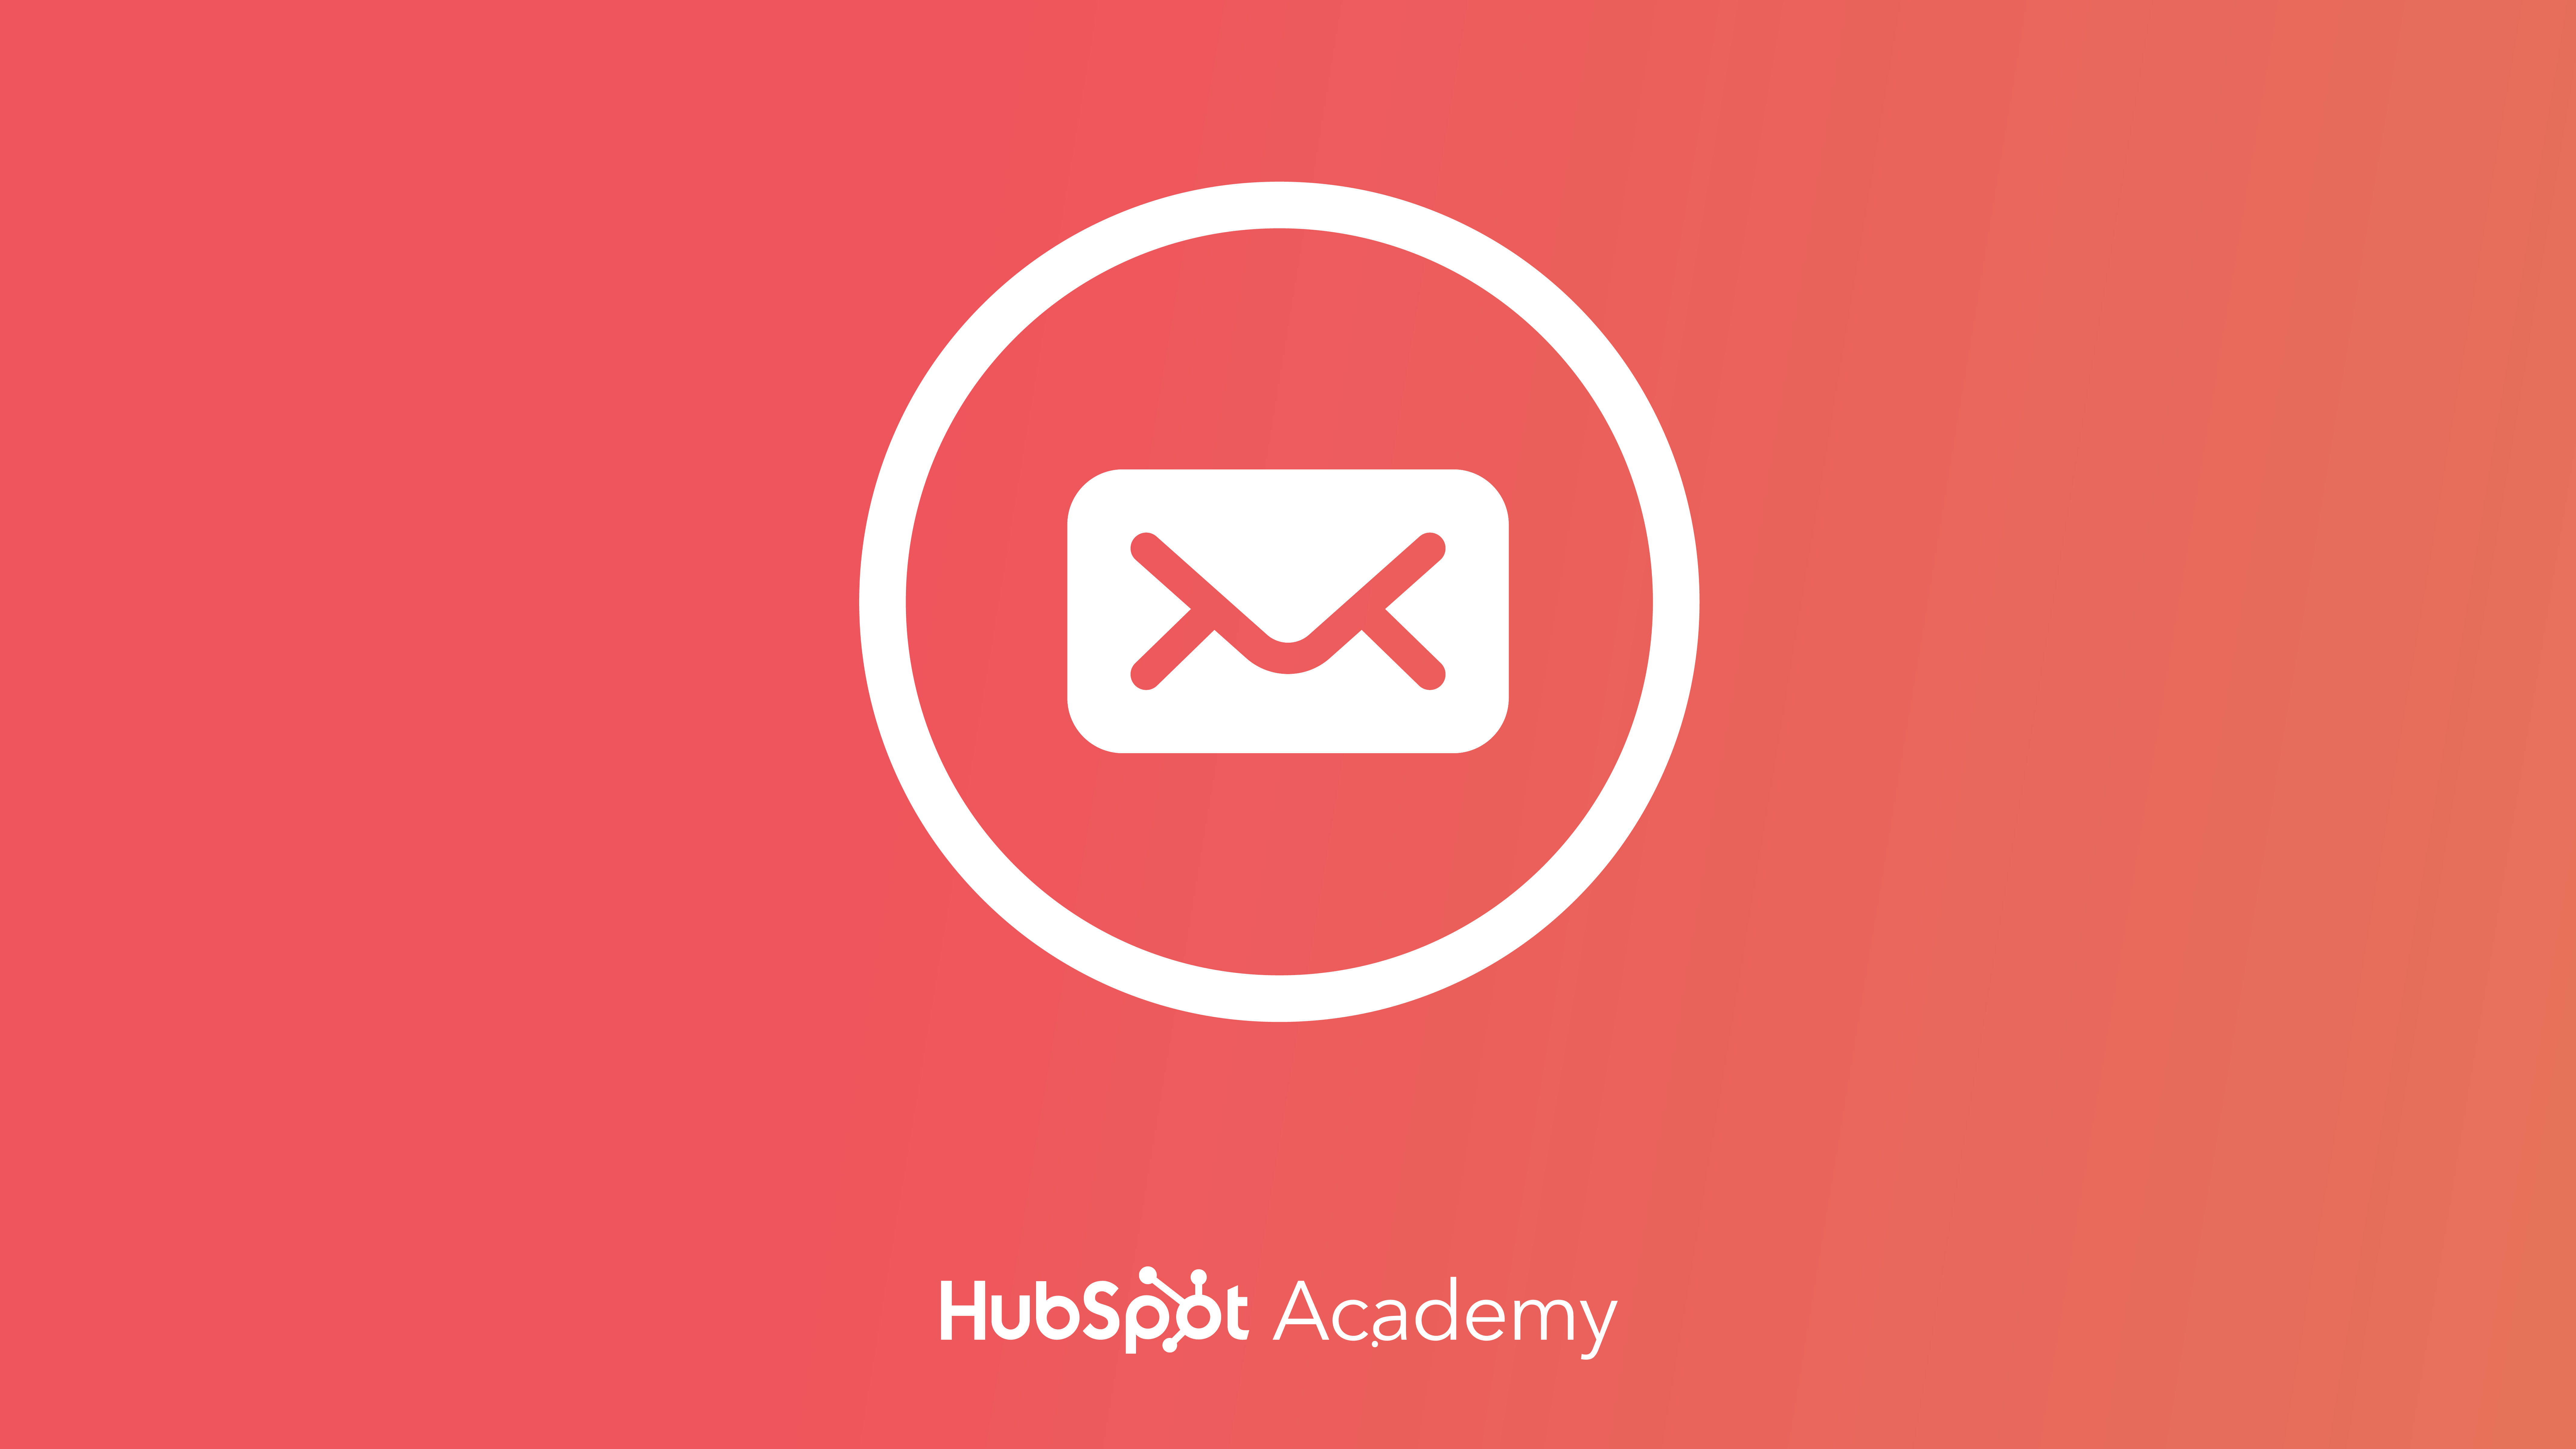 Email Marketing Certification course by HubSpot Academy